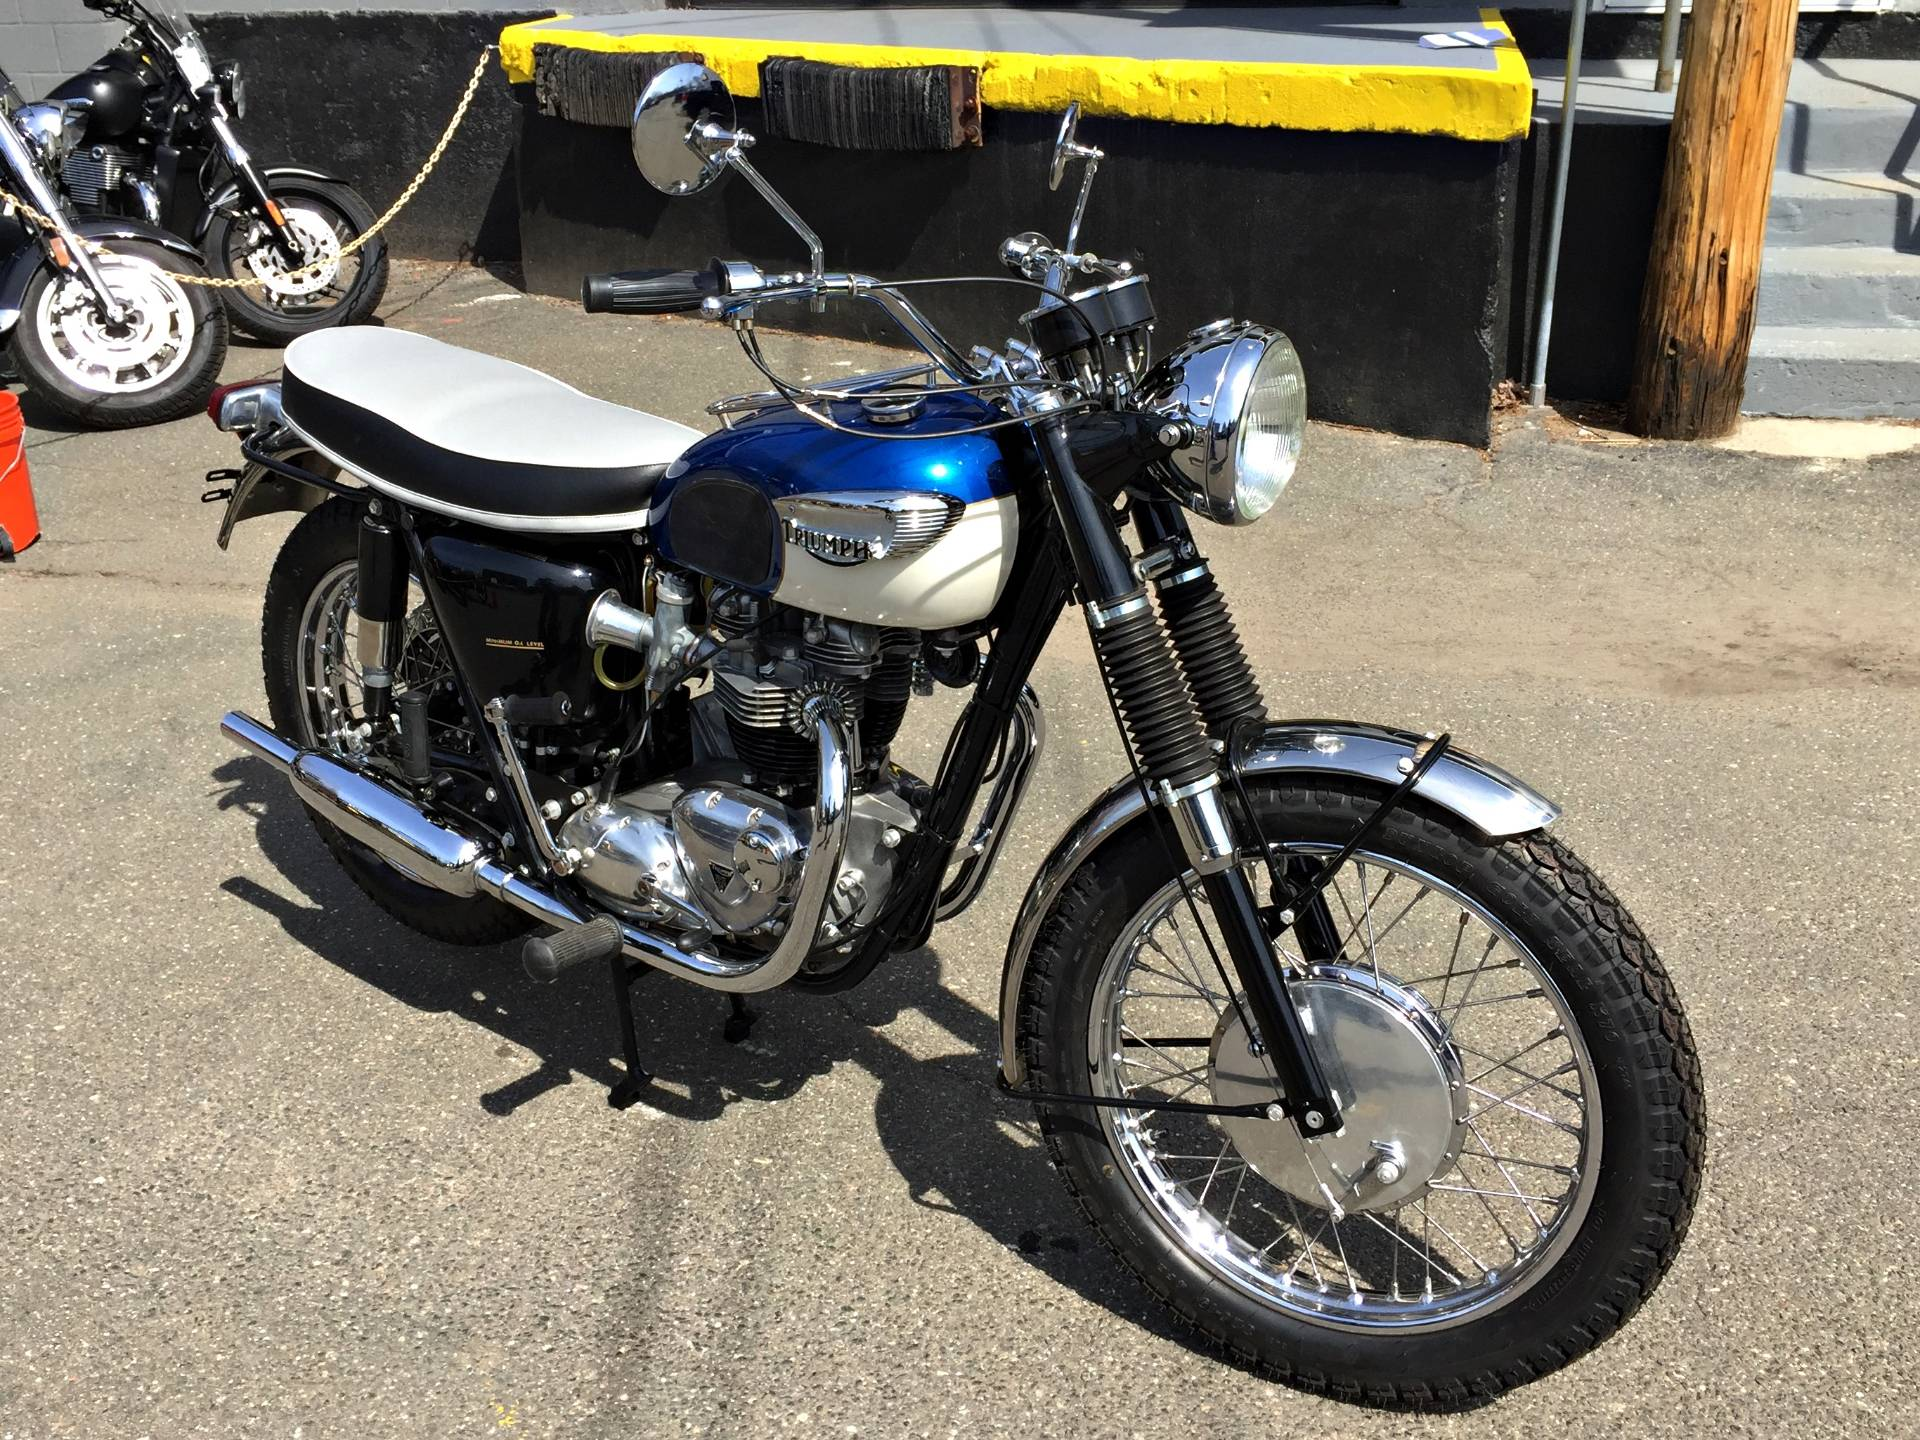 1971 Triumph Bonneville Wiring Harness For Motorcycle